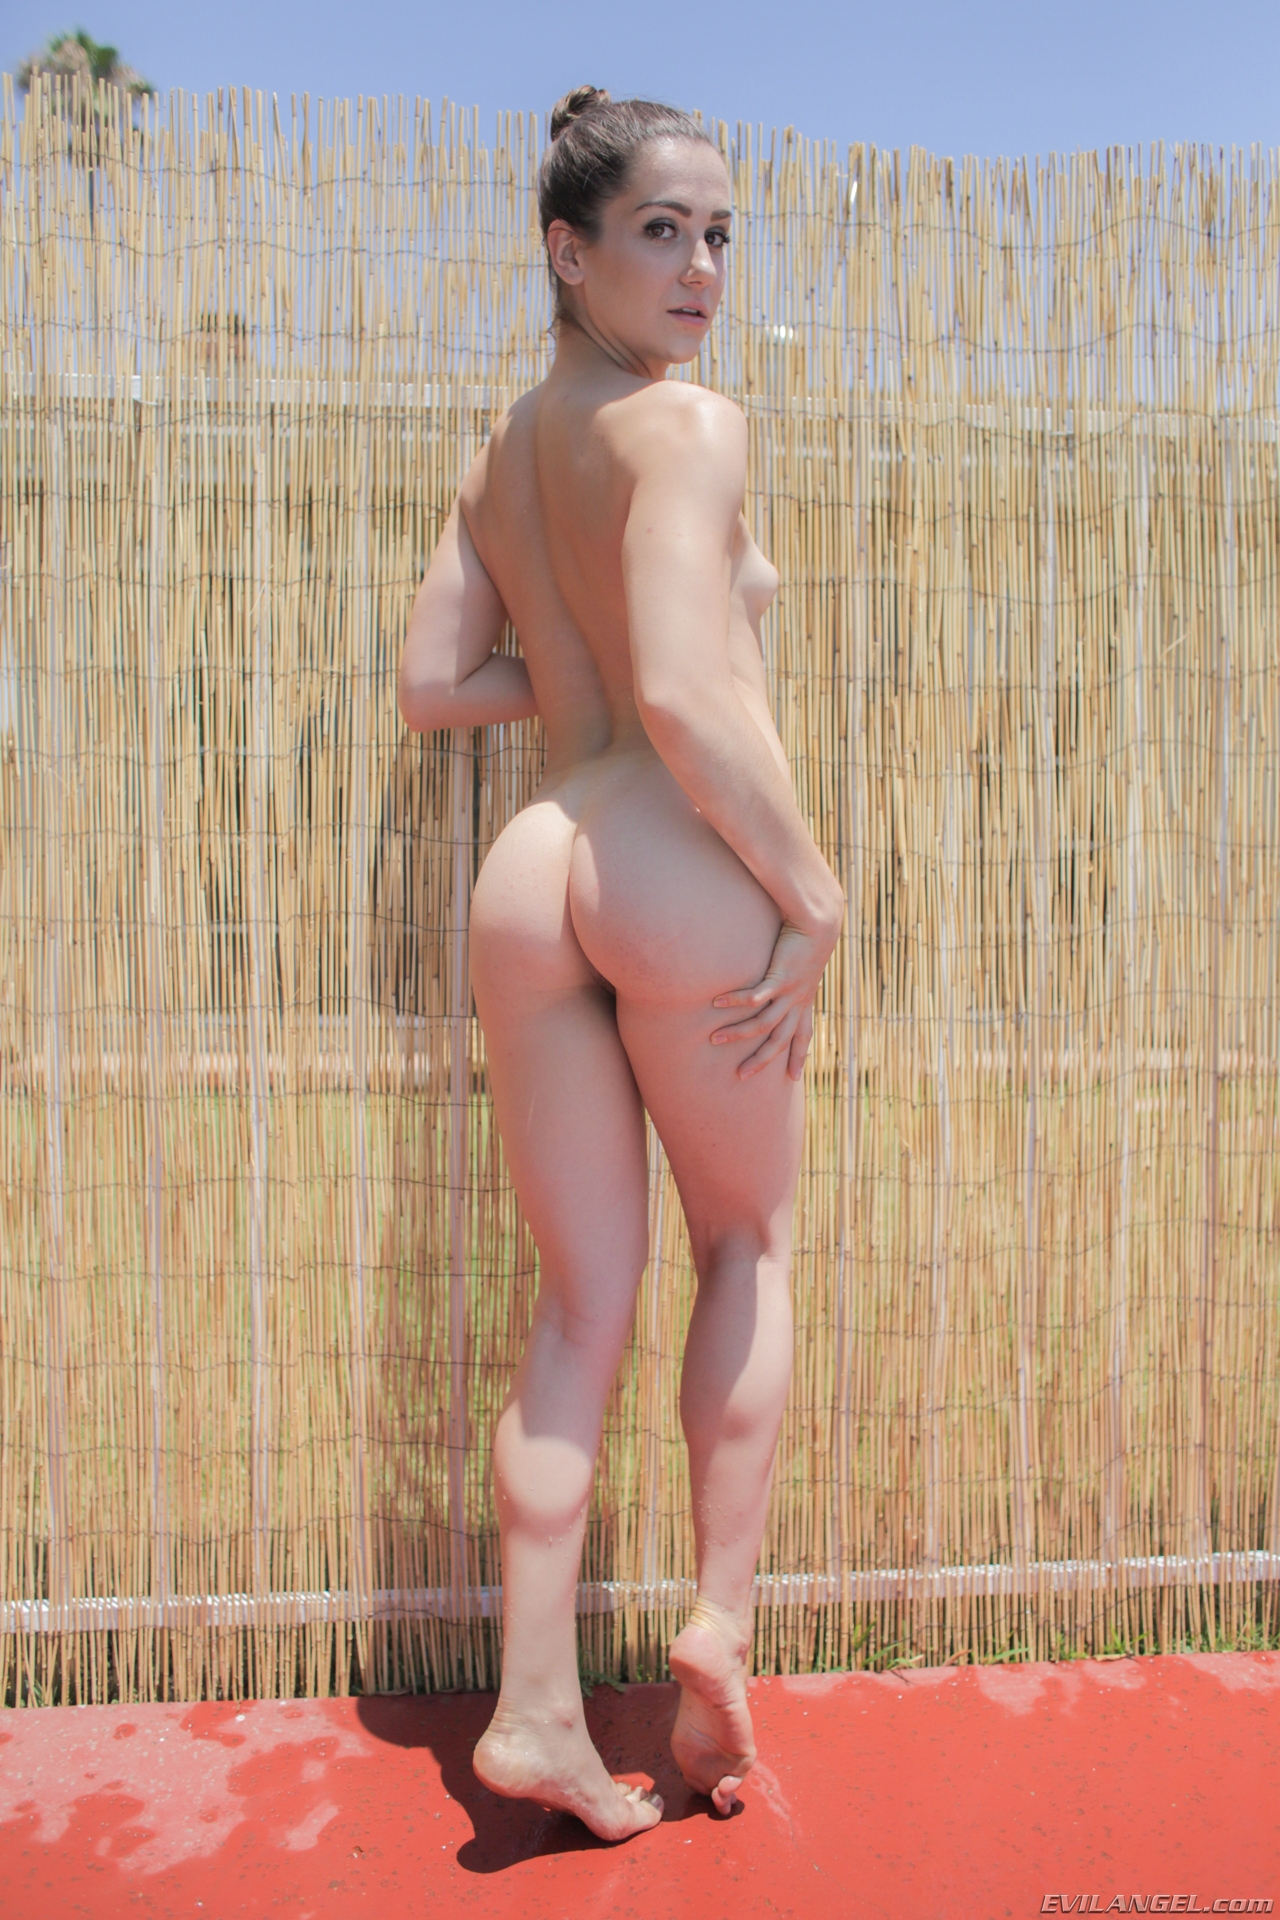 sweet hairy triangle attracts her bisexual girlfriend #6